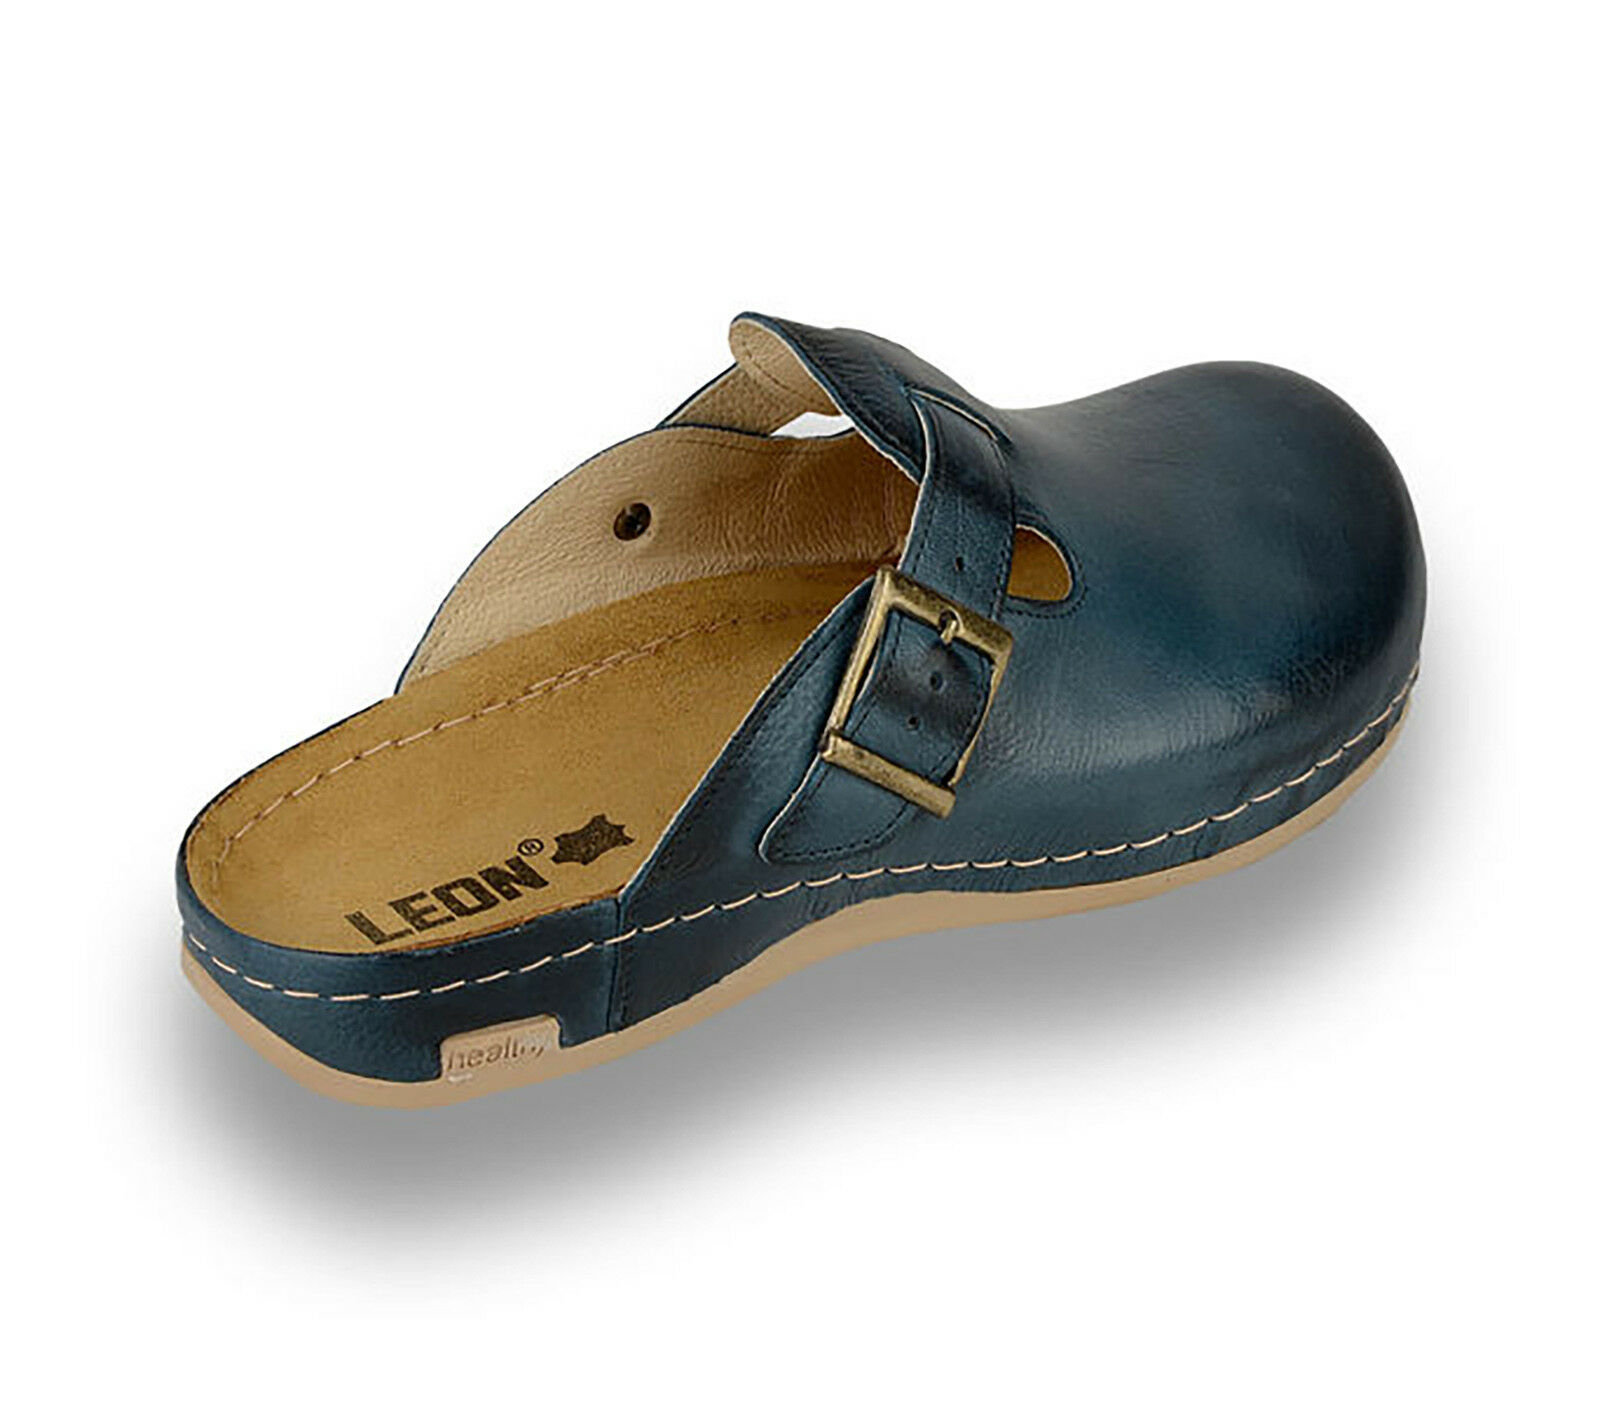 LEON 707 Mens Leather Slip On Mules Clogs Sandals UK Slippers Shoes, Blue, New UK Sandals d0e290